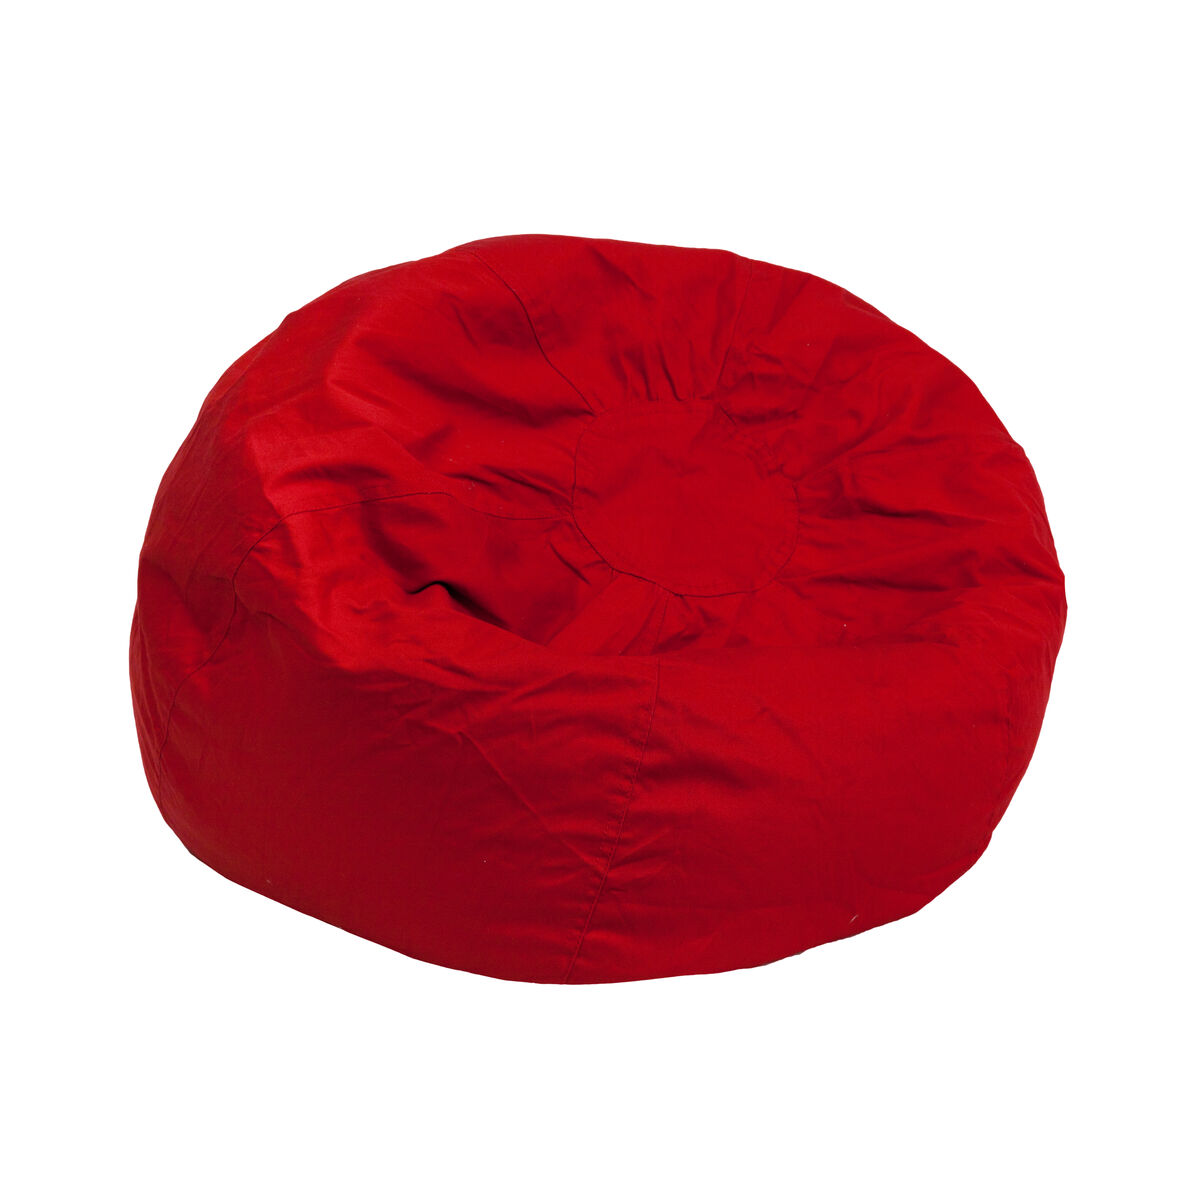 Our Small Solid Red Kids Bean Bag Chair Is On Now